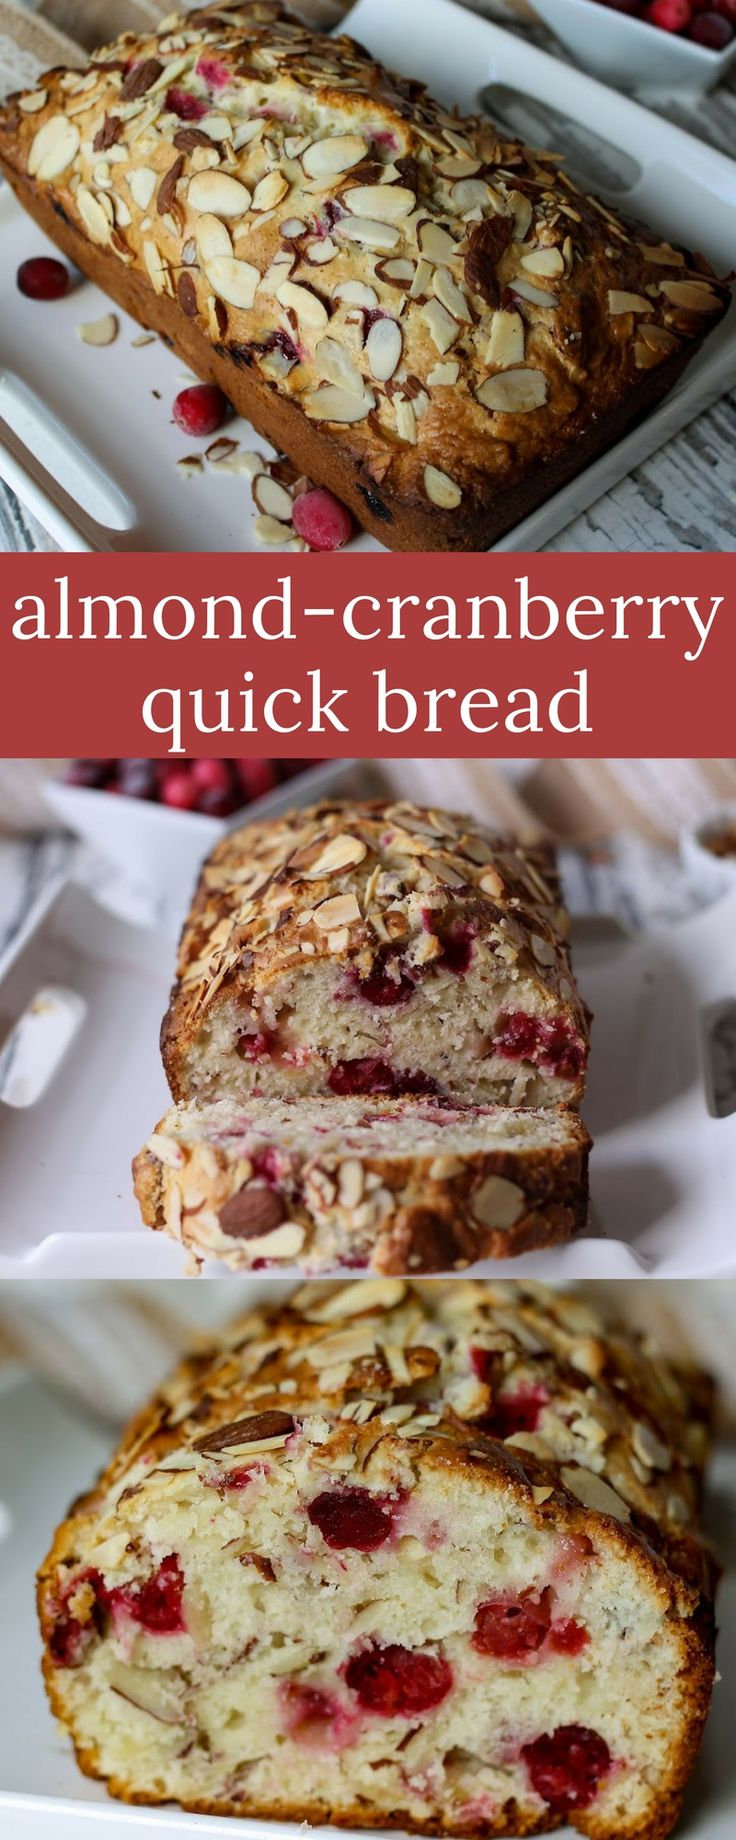 Tender and slightly sweet, we adored this quick bread recipe. It's tart from the cranberries, but a little sweet from the almond extract.